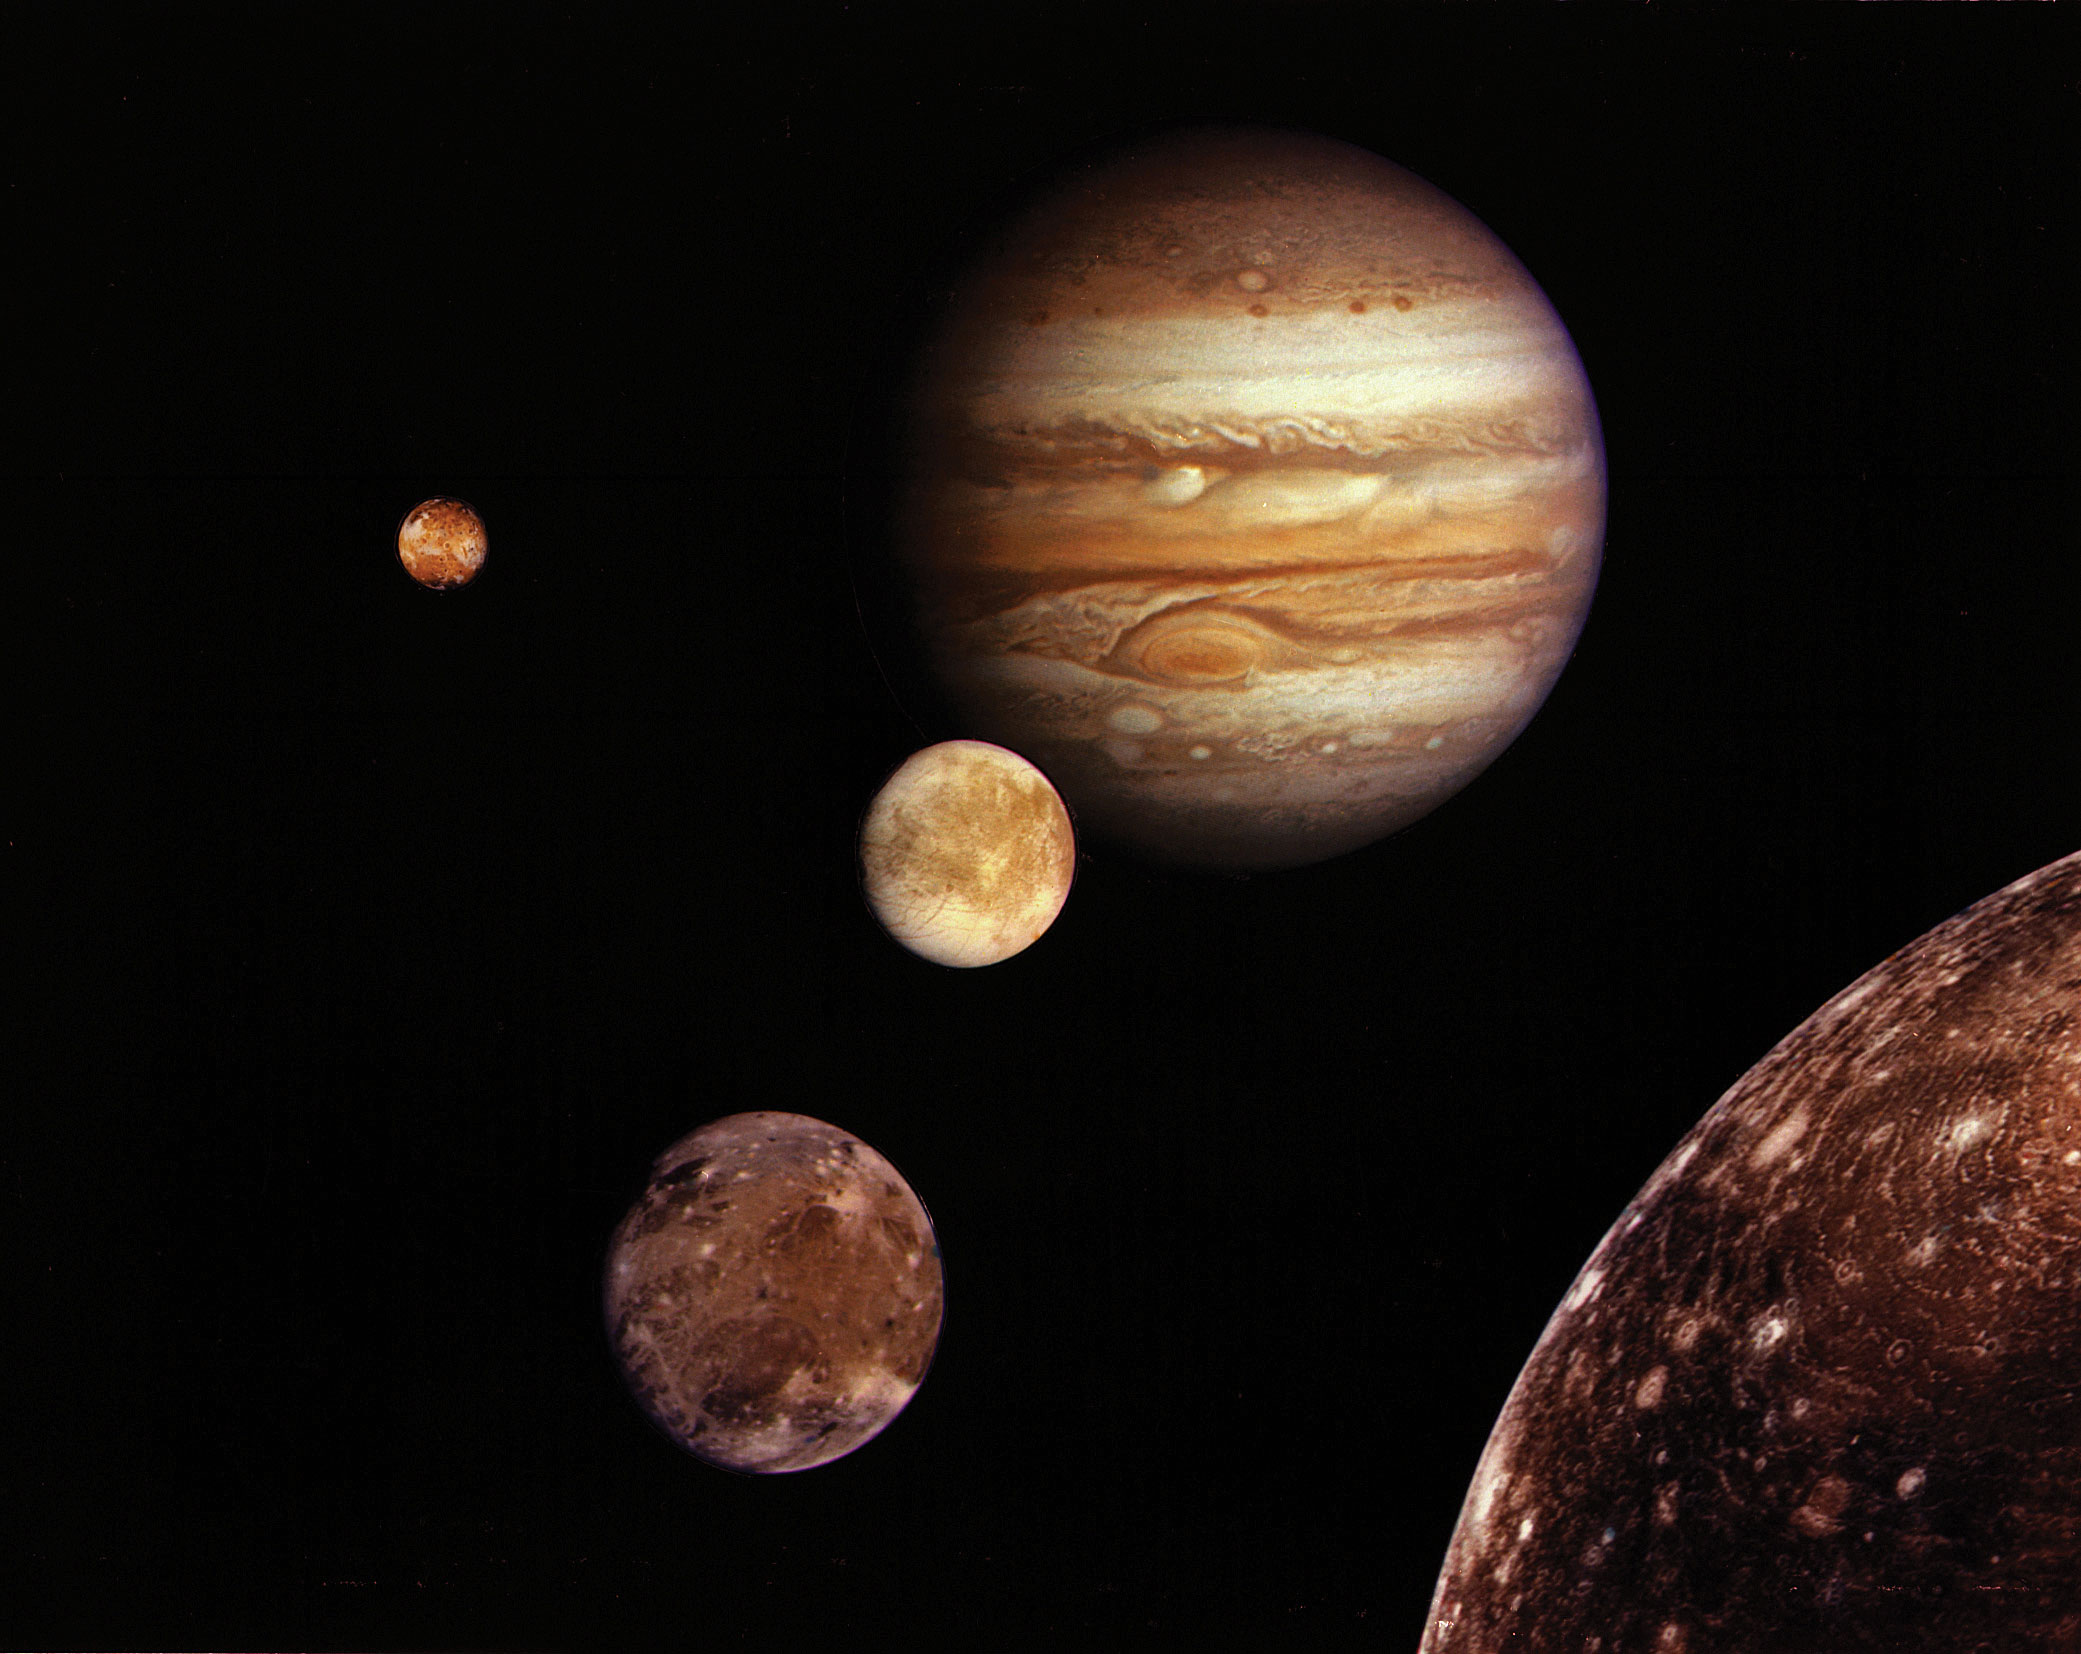 Jupiter and its four planet-size moons, called the Galilean satellites, were photographed in early March 1979 by Voyager 1 and assembled into this collage. They are not to scale but are in their relative positions. Startling new discoveries on the Galilean moons and the planet Jupiter made by Voyager l factored into a new mission design for Voyager 2. Reddish Io (upper left) is nearest Jupiter; then Europa (center); Ganymede and Callisto (lower right). Credit: NASA/JPL